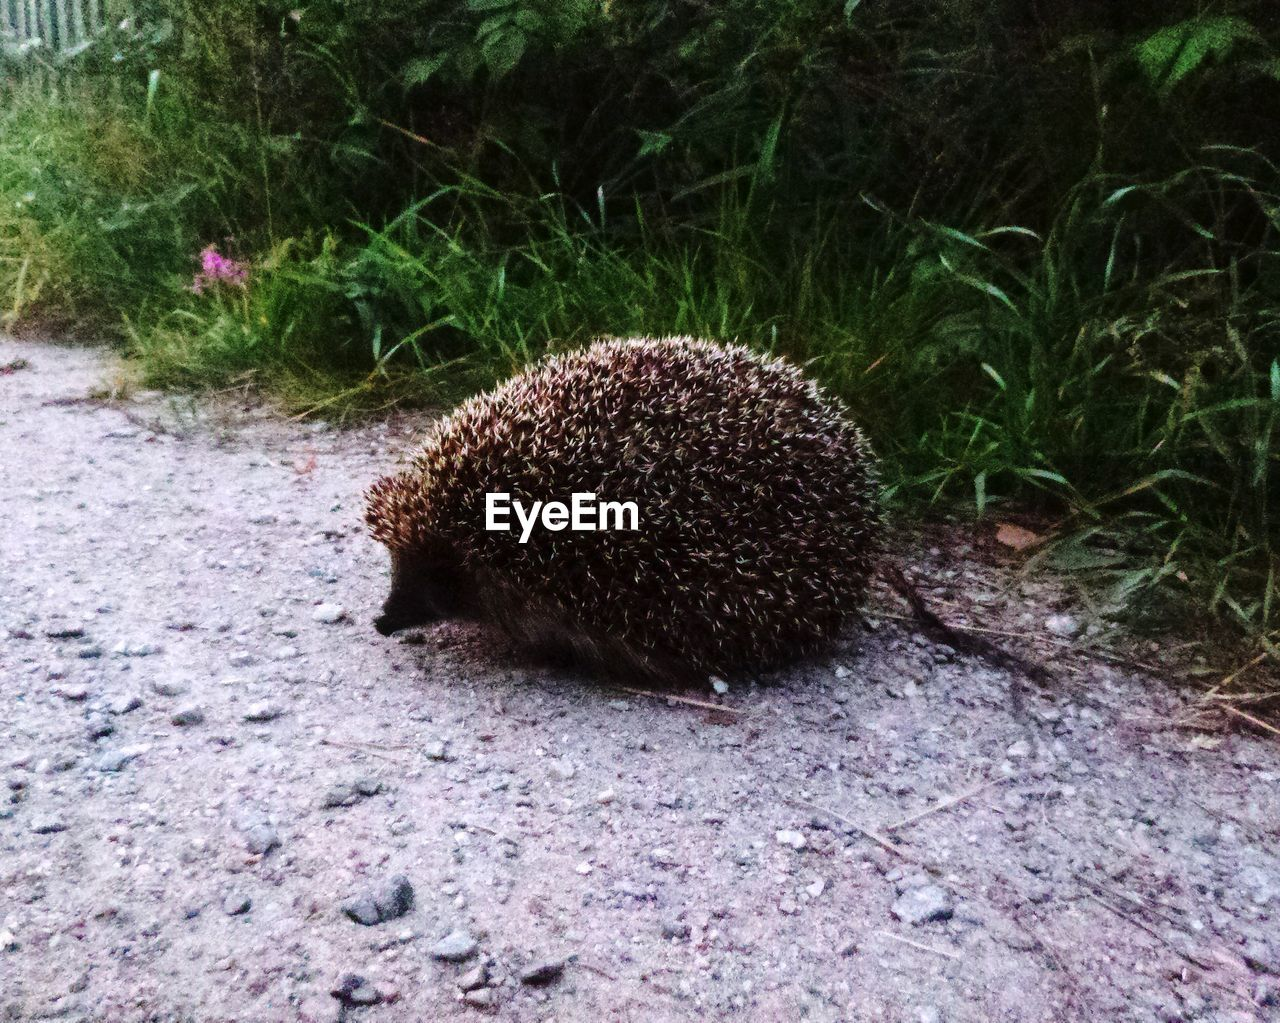 animal, plant, hedgehog, animal themes, no people, one animal, nature, animal wildlife, animals in the wild, land, close-up, field, grass, mammal, day, outdoors, food, high angle view, freshness, rock